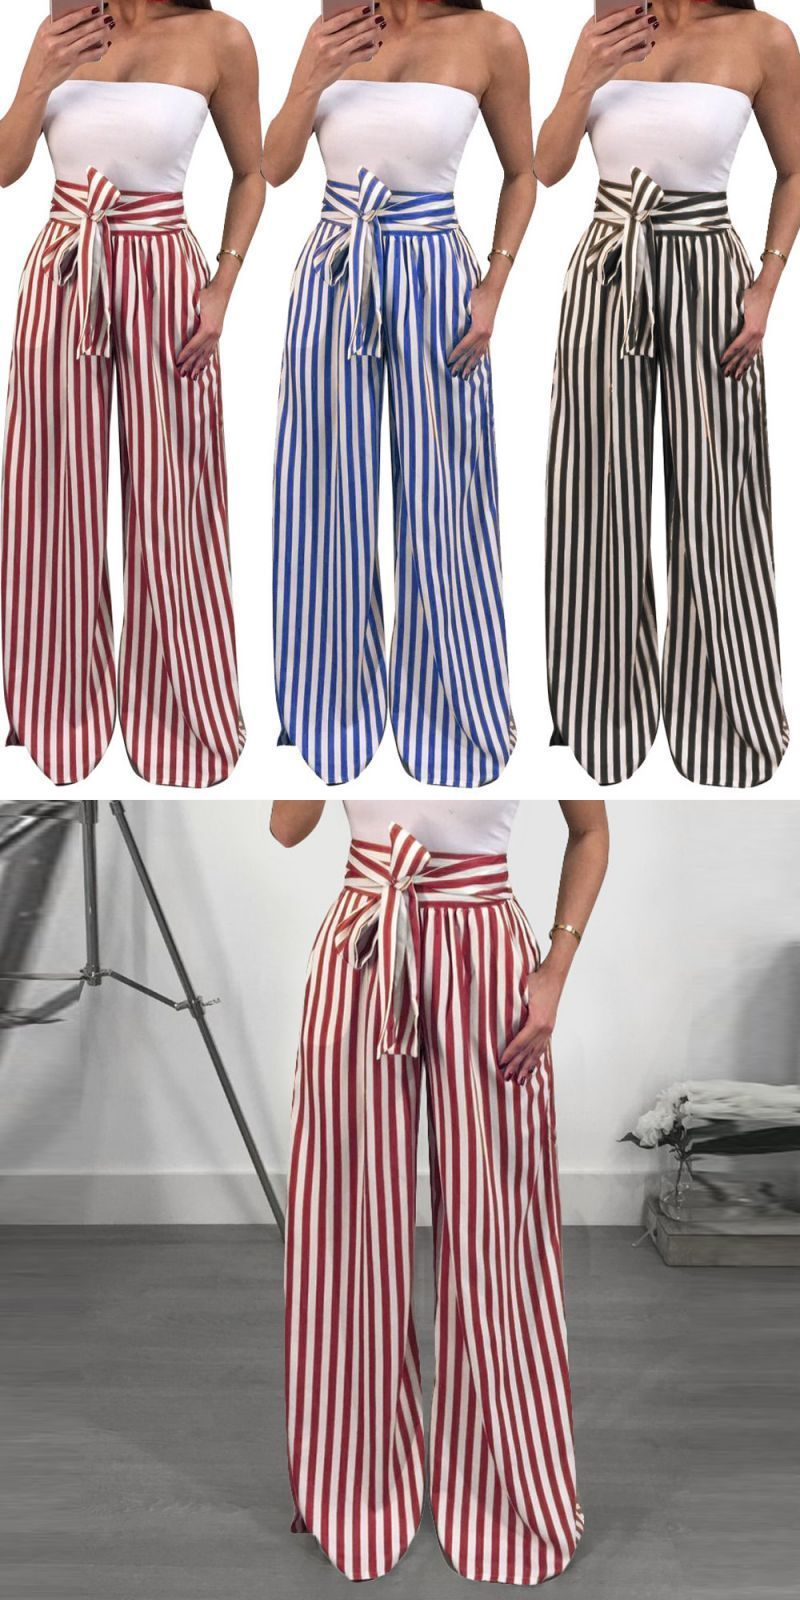 Casual pants women striped high waist striped printed bandage trousers  wide-leg harem pants pantalones anchos yjj34  cotton a5ce5180b56